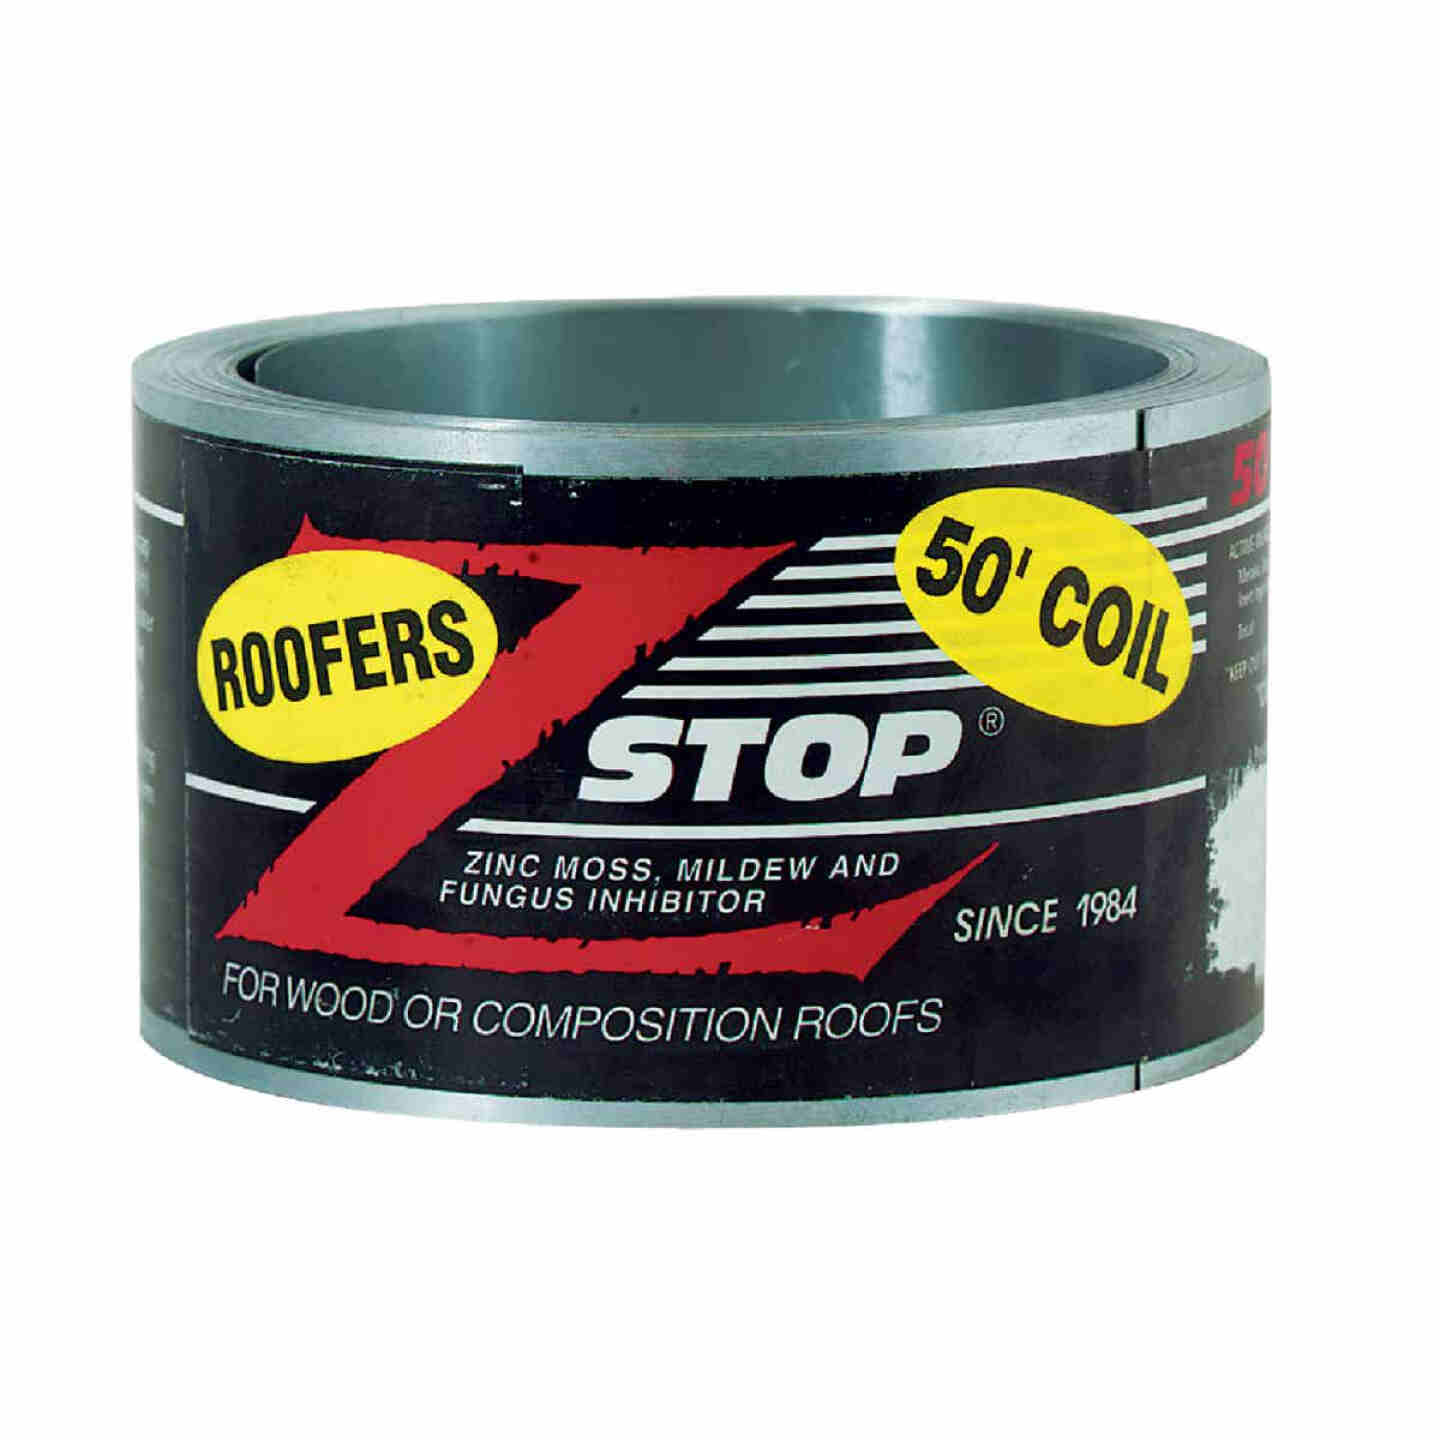 NorWesco 2.67 In. x 50 Ft. Roll Z-Stop Image 1